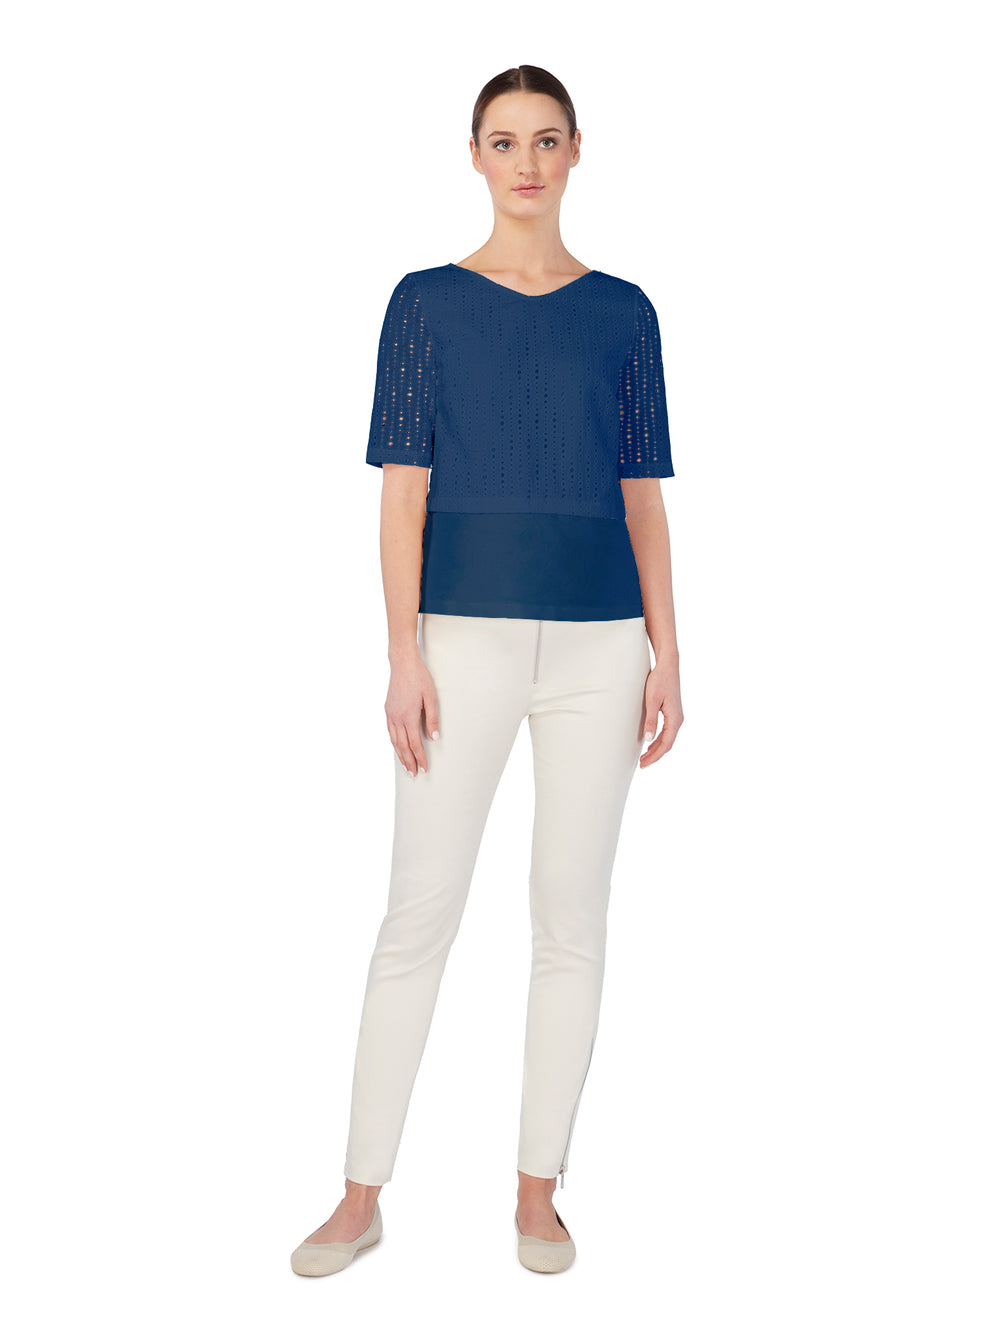 B165B_Calla 2-way Top_Insignia Blue